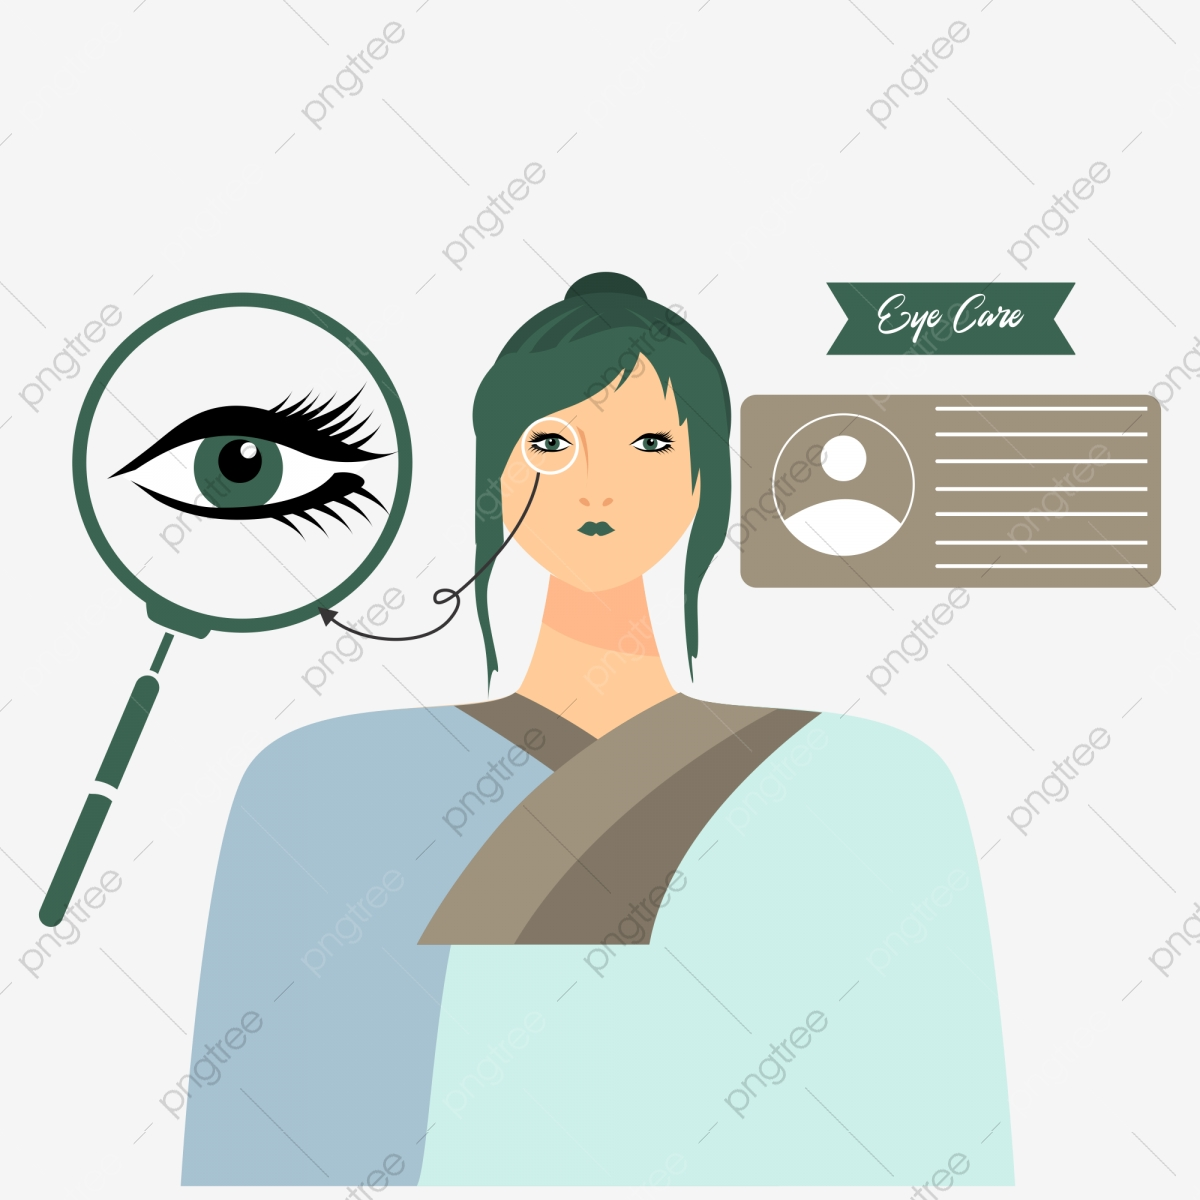 Confused About Eye Care? Get Help Here